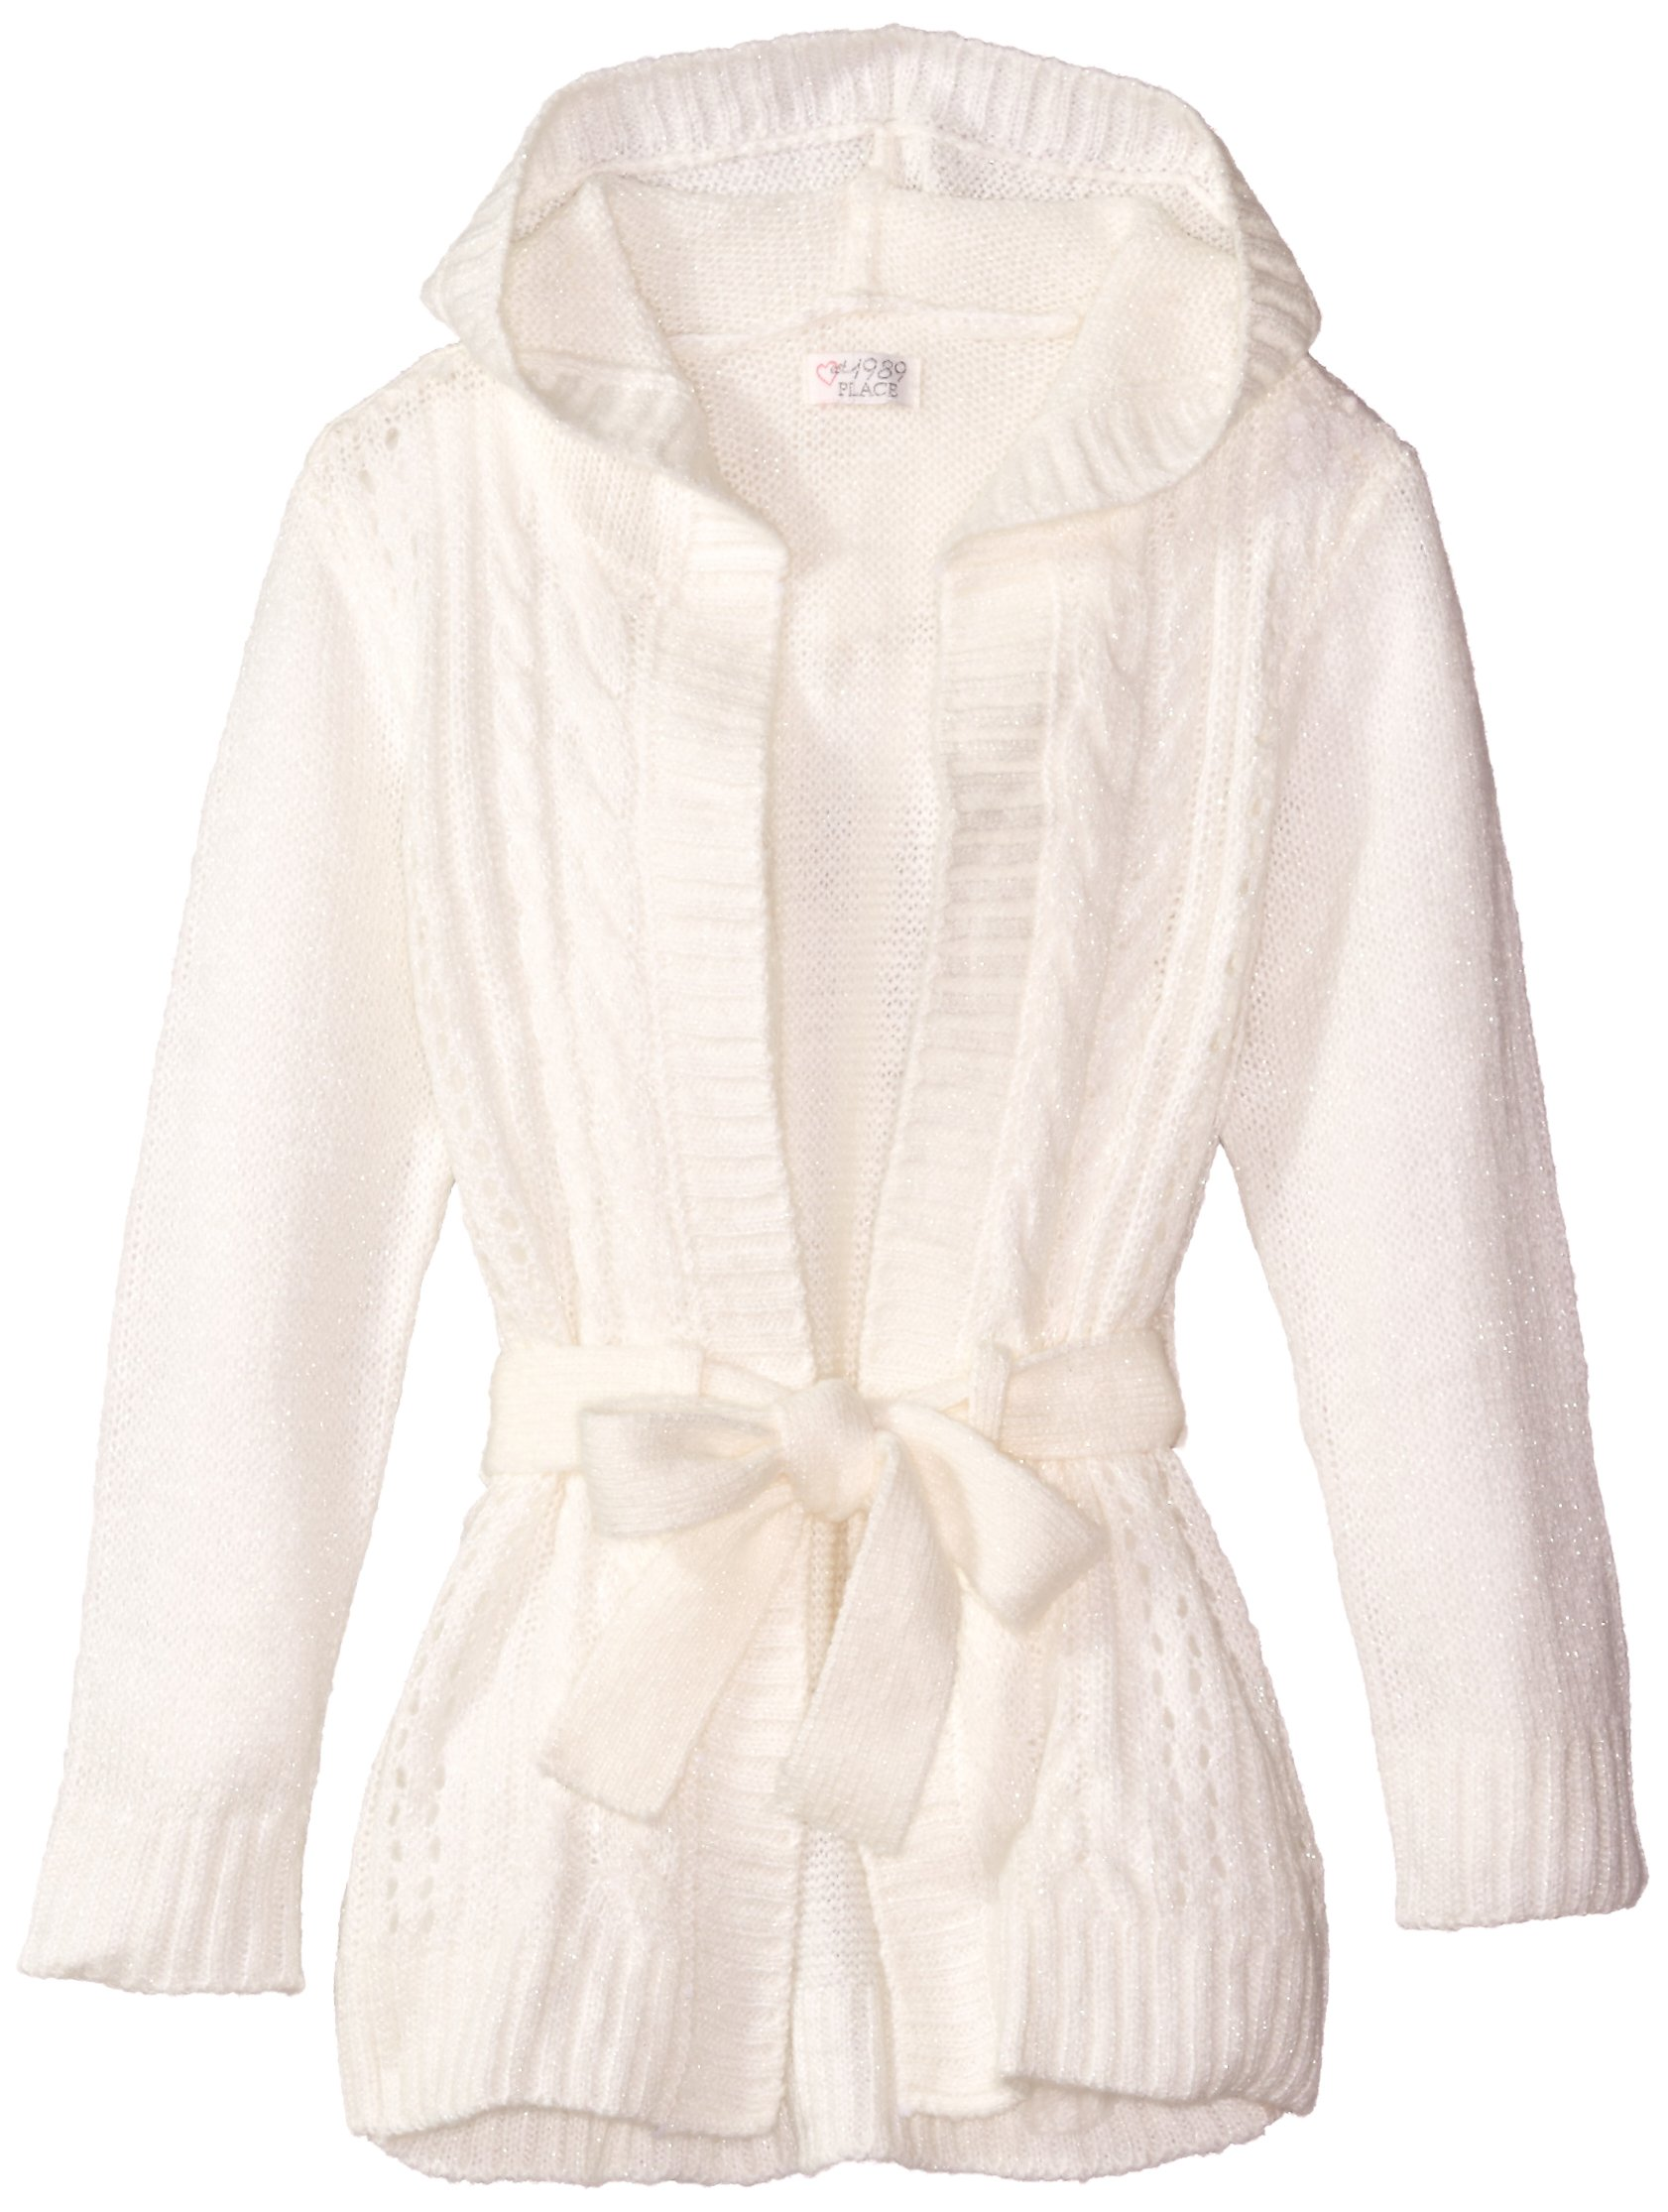 The Children's Place Little Girls' Hoodie Sweater Coat, Cloud, X-Small/4